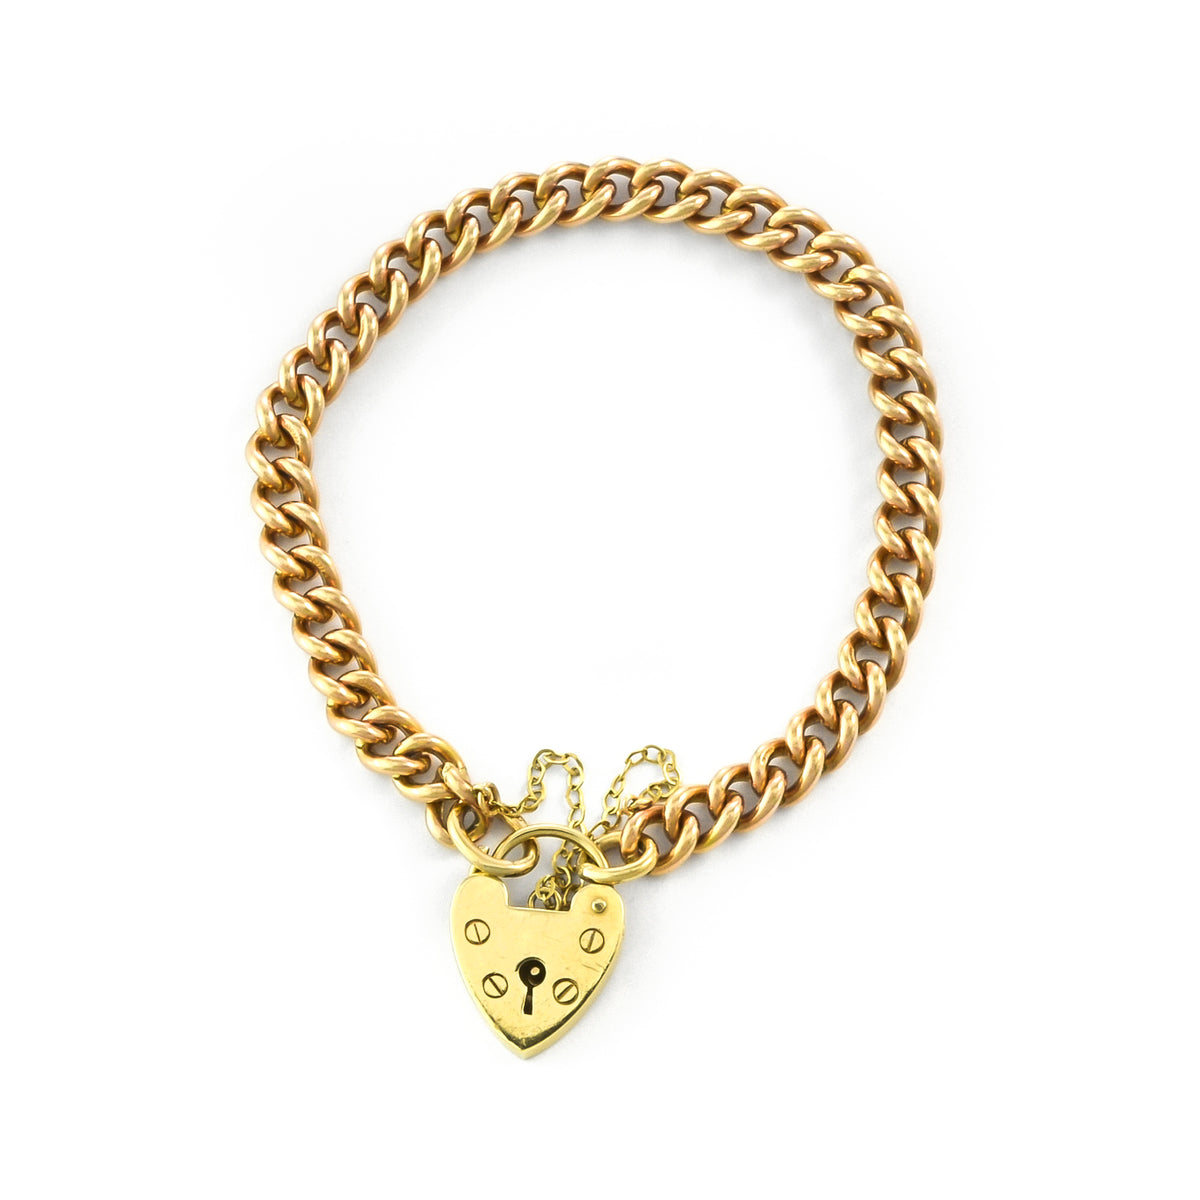 Vintage 9ct Yellow Gold Heart Curb Bracelet